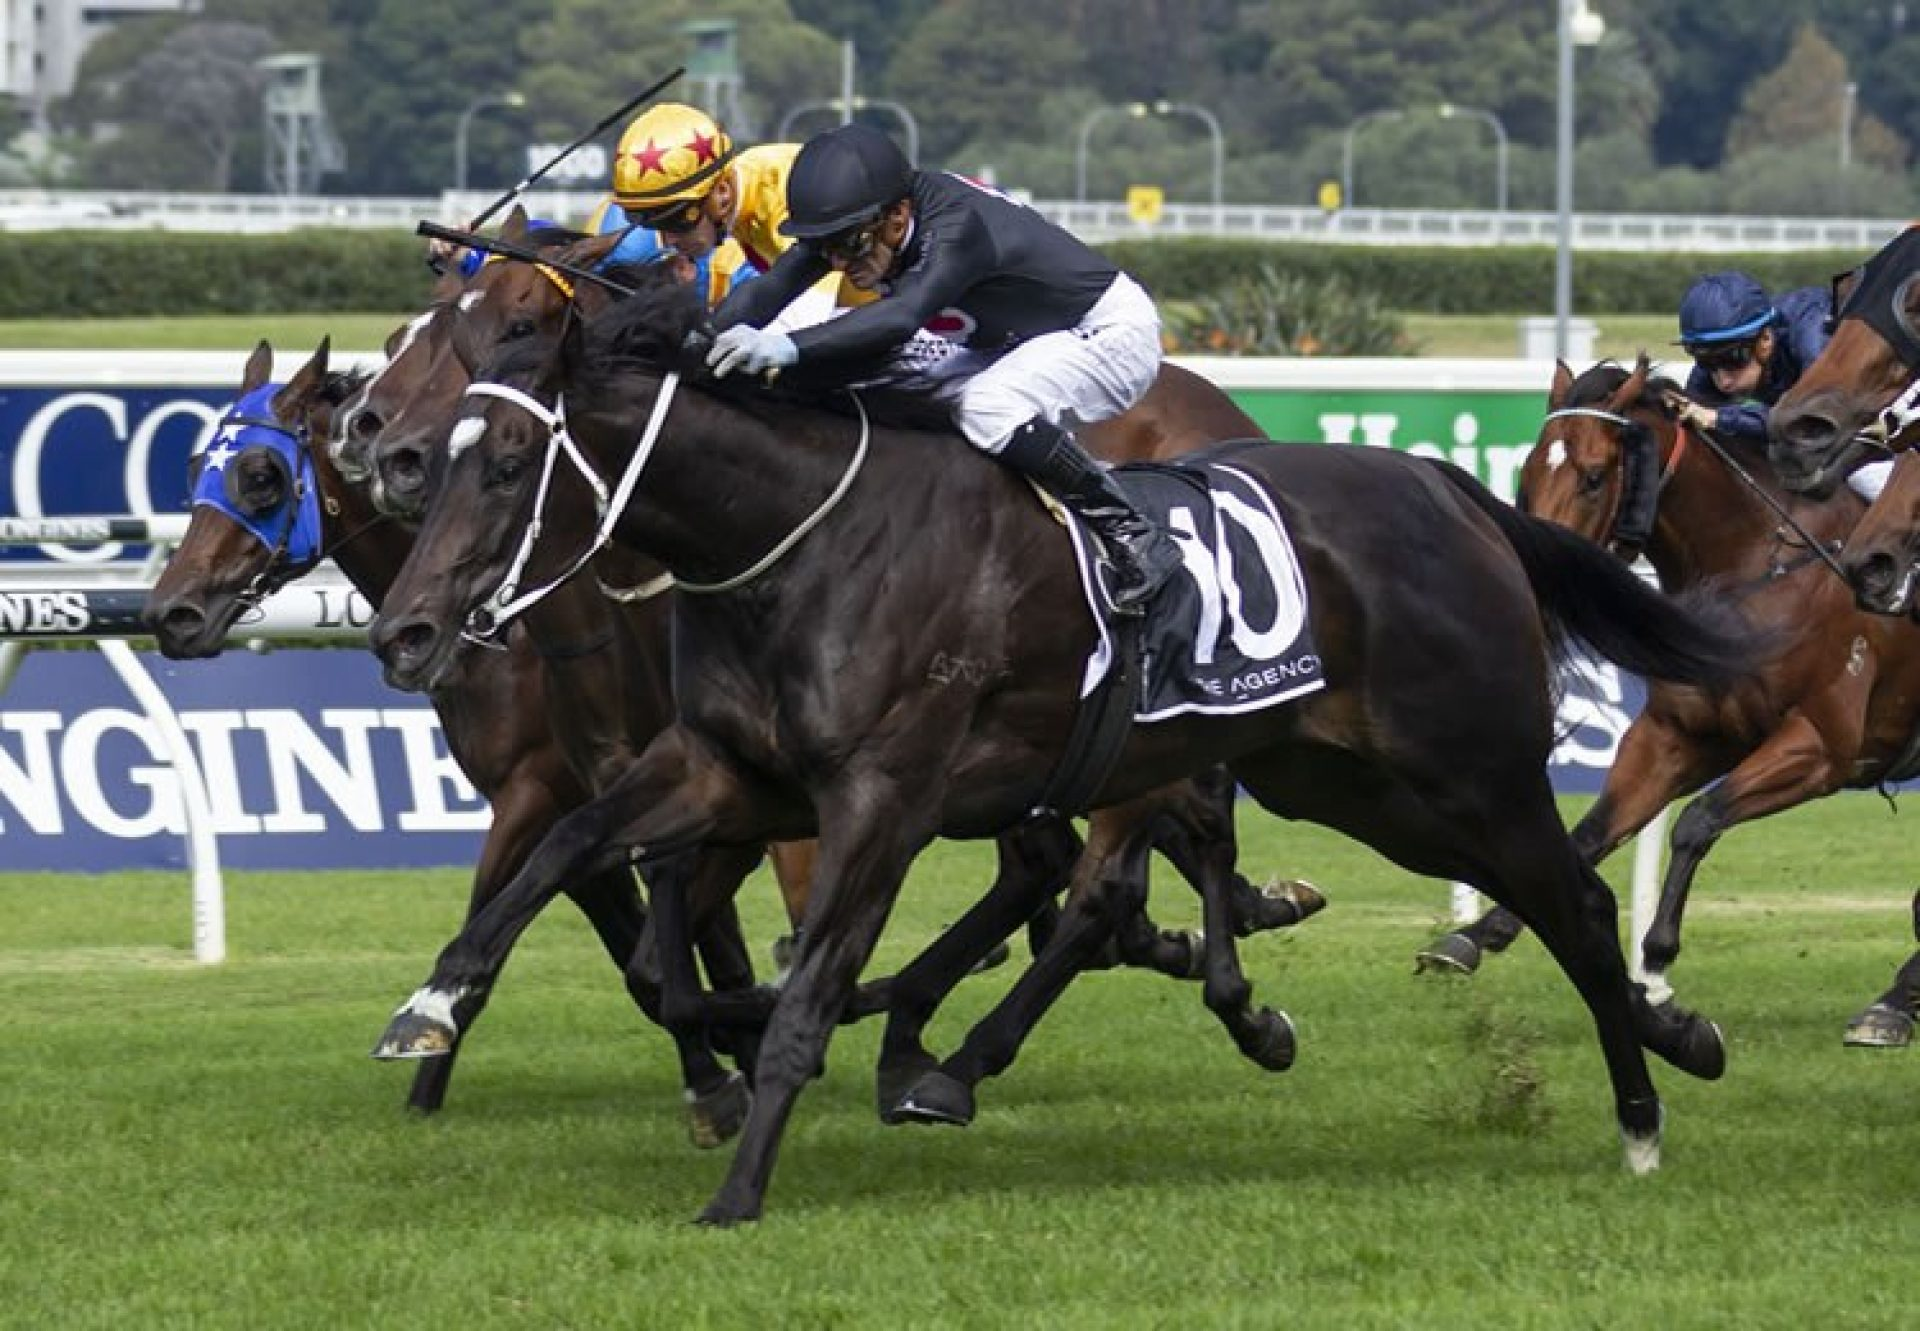 Fasika (So You Think) winning the Listed ATC South Pacific Classic at Randwick